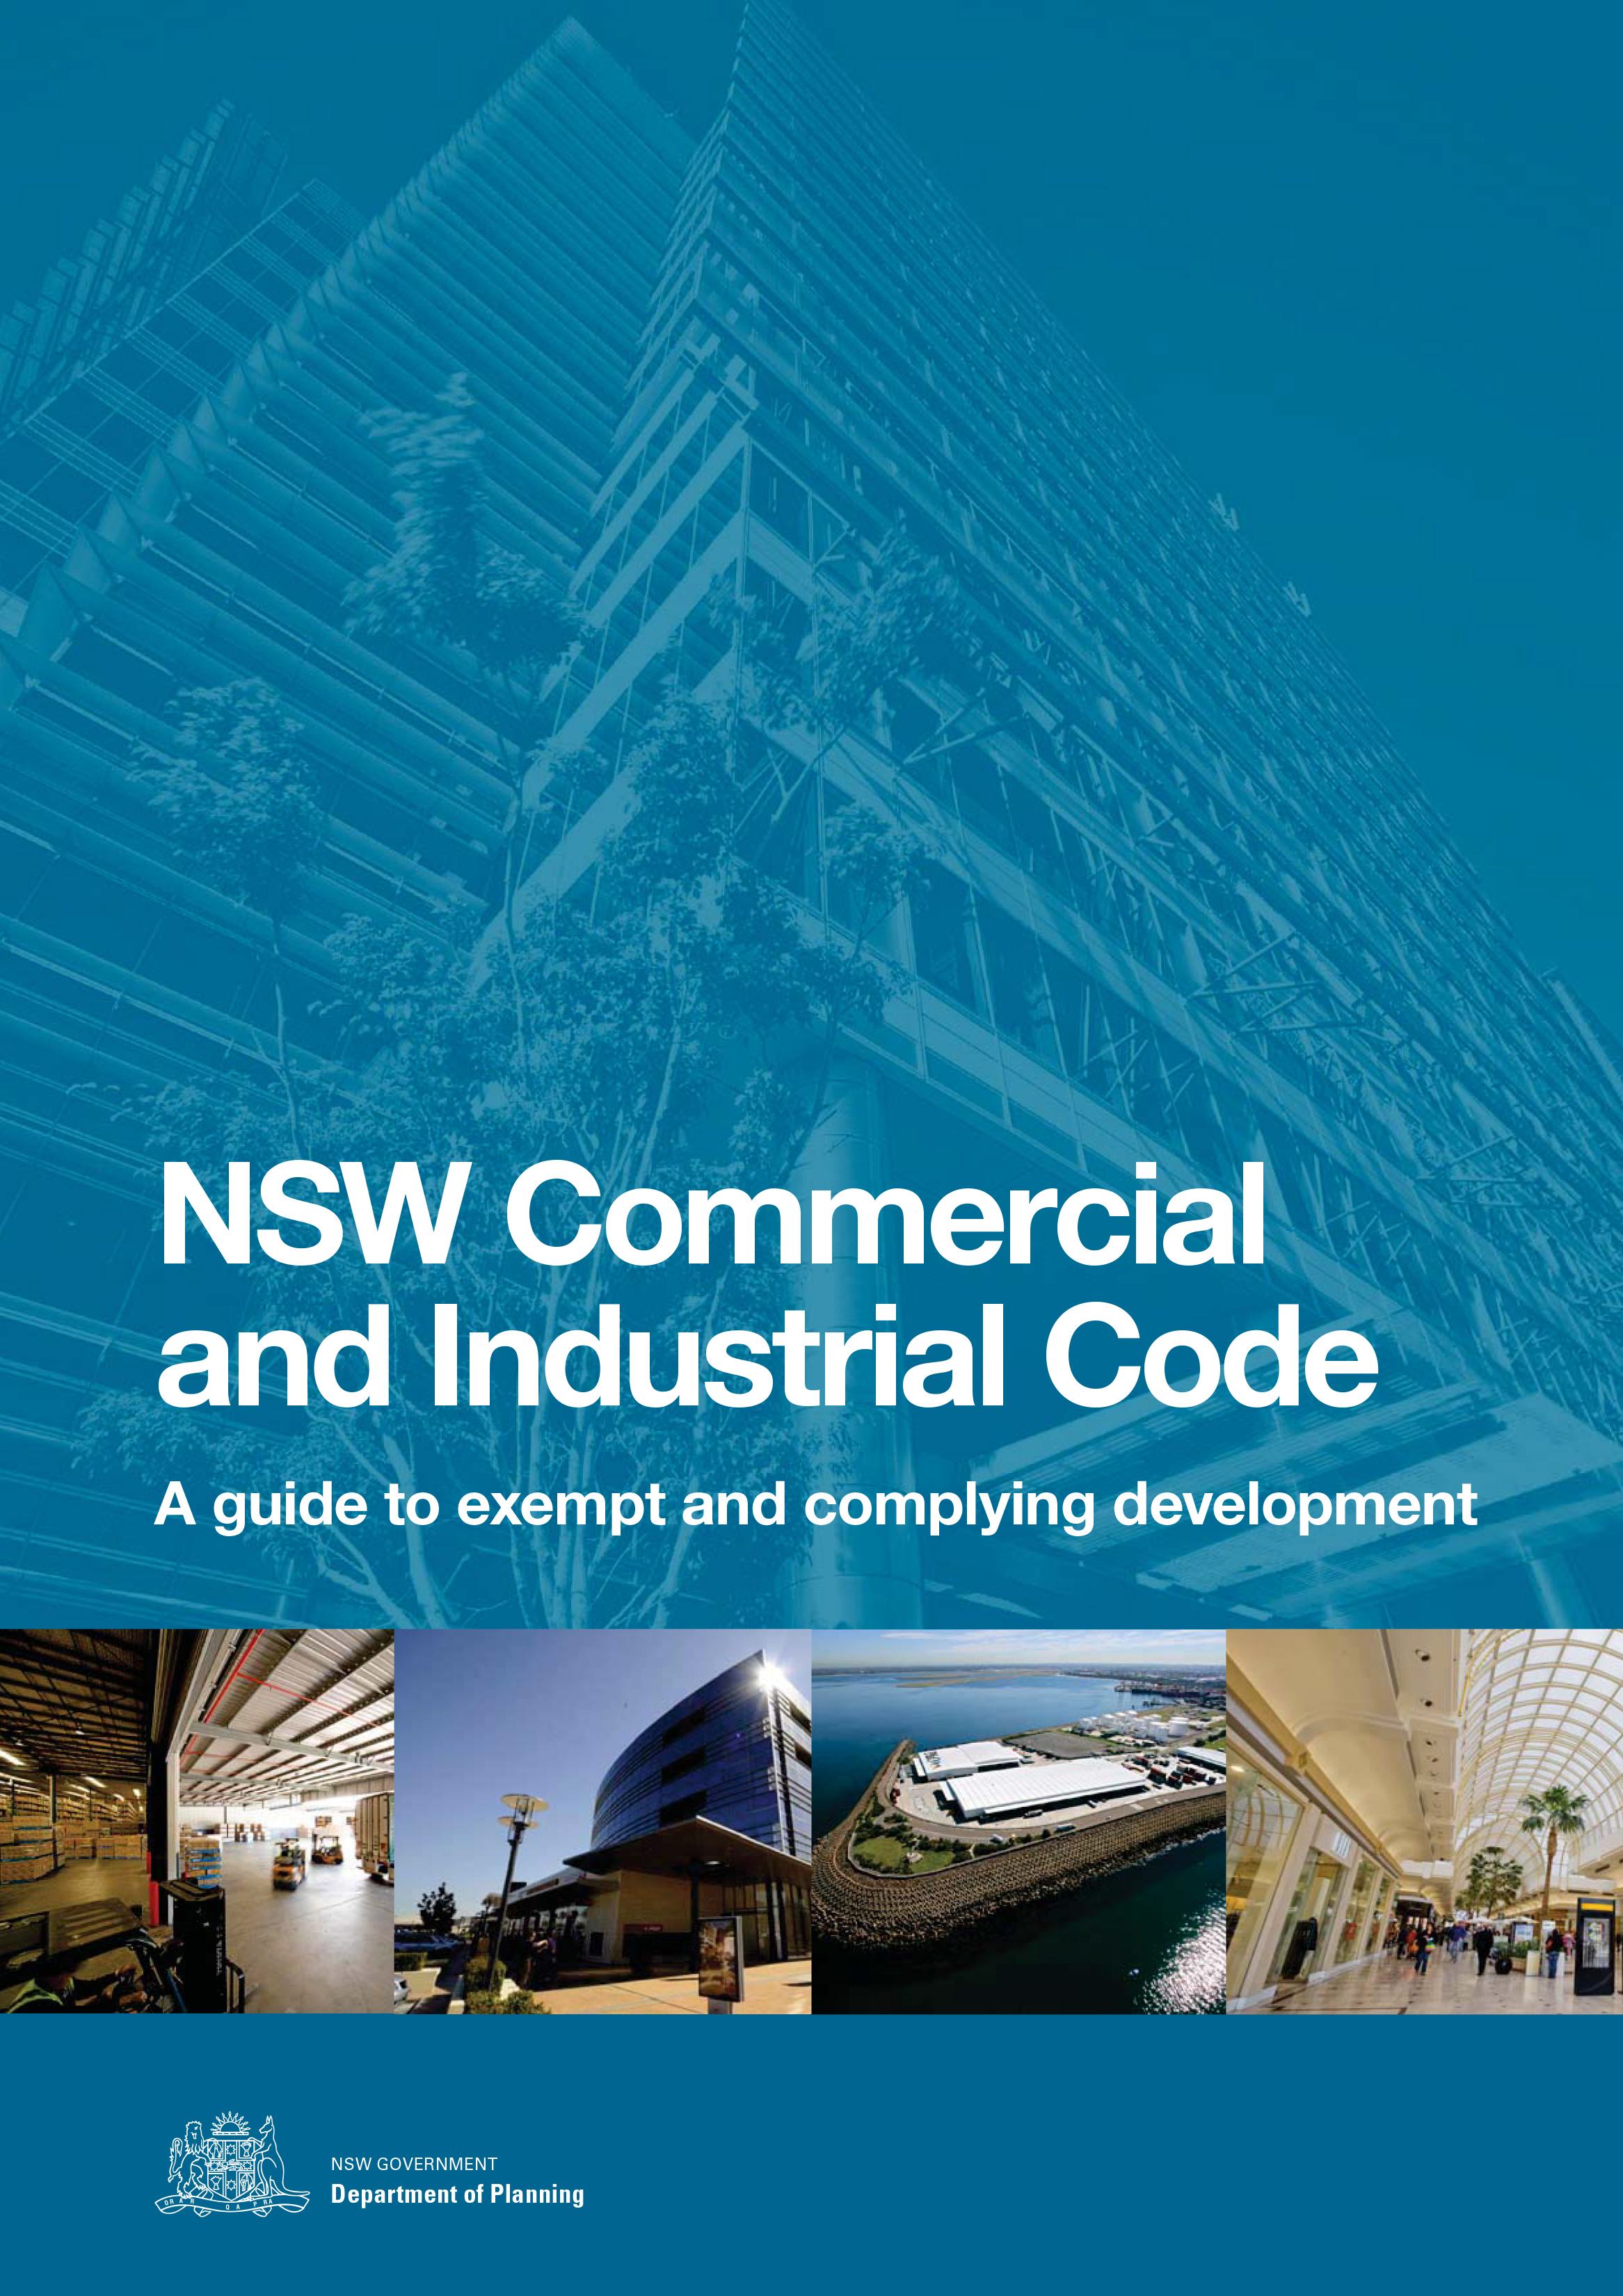 NSW Comercial and Industrial Code - NSW Planning (1).jpg